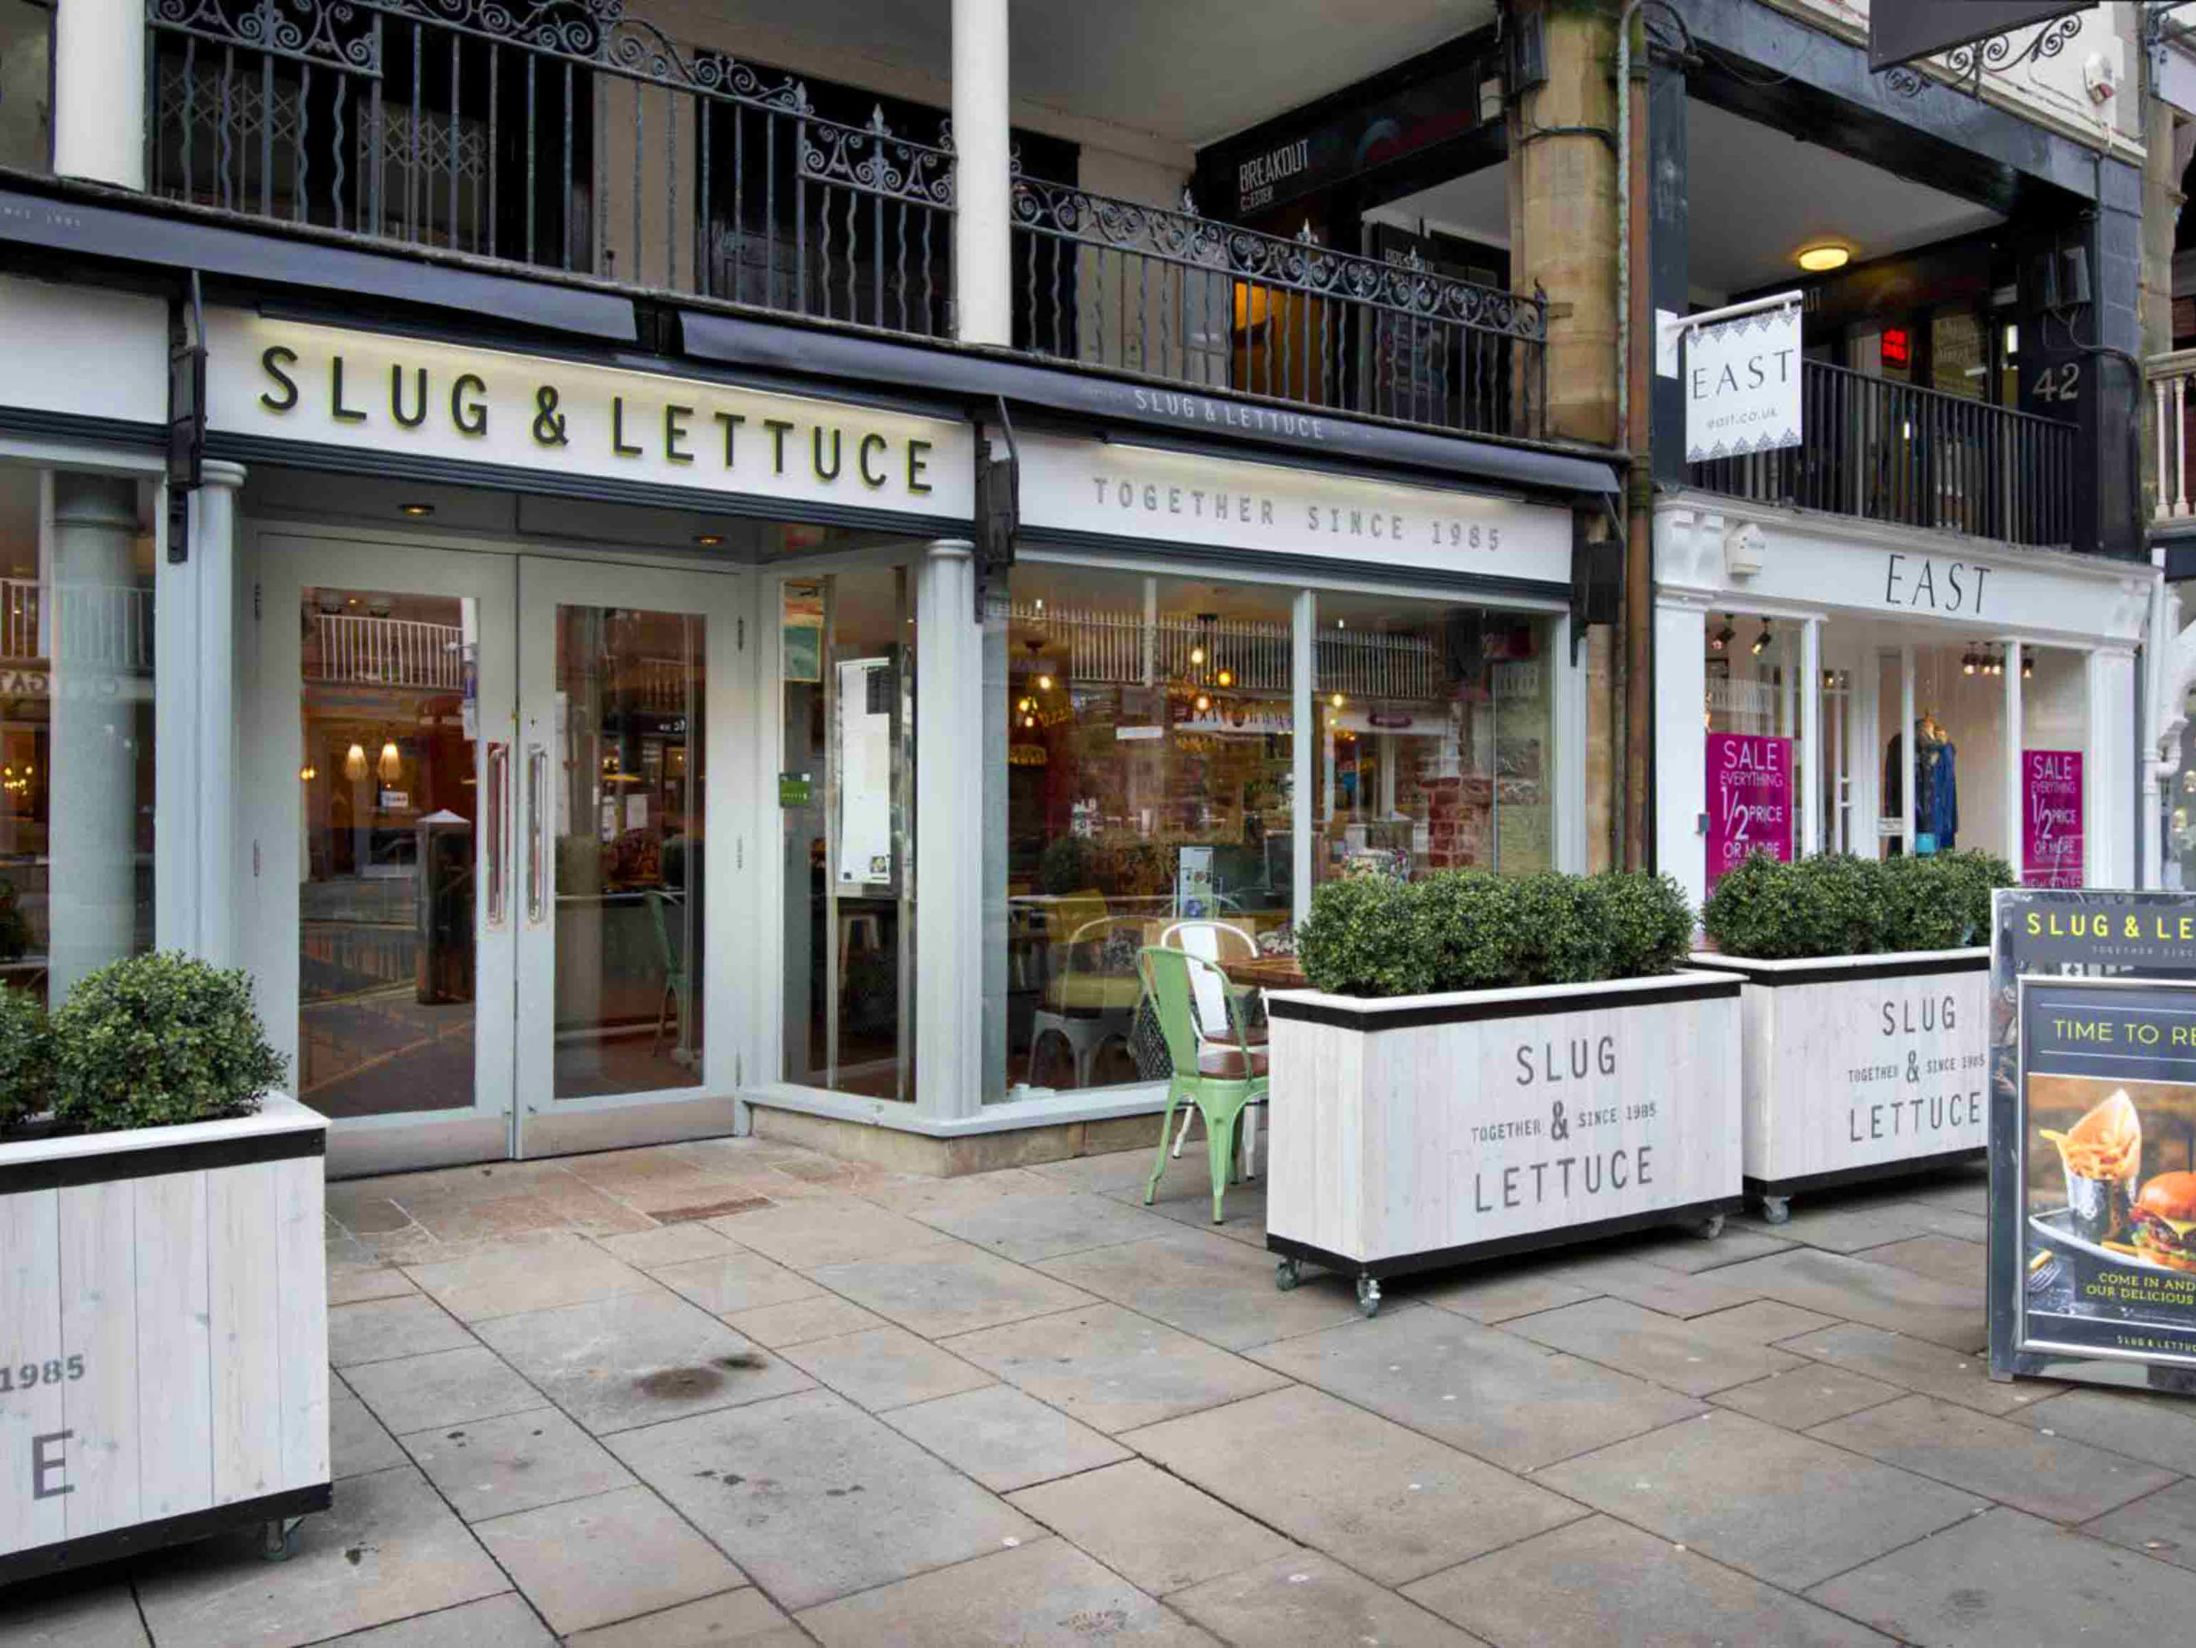 Slug & Lettuce - Best Bars in Chester